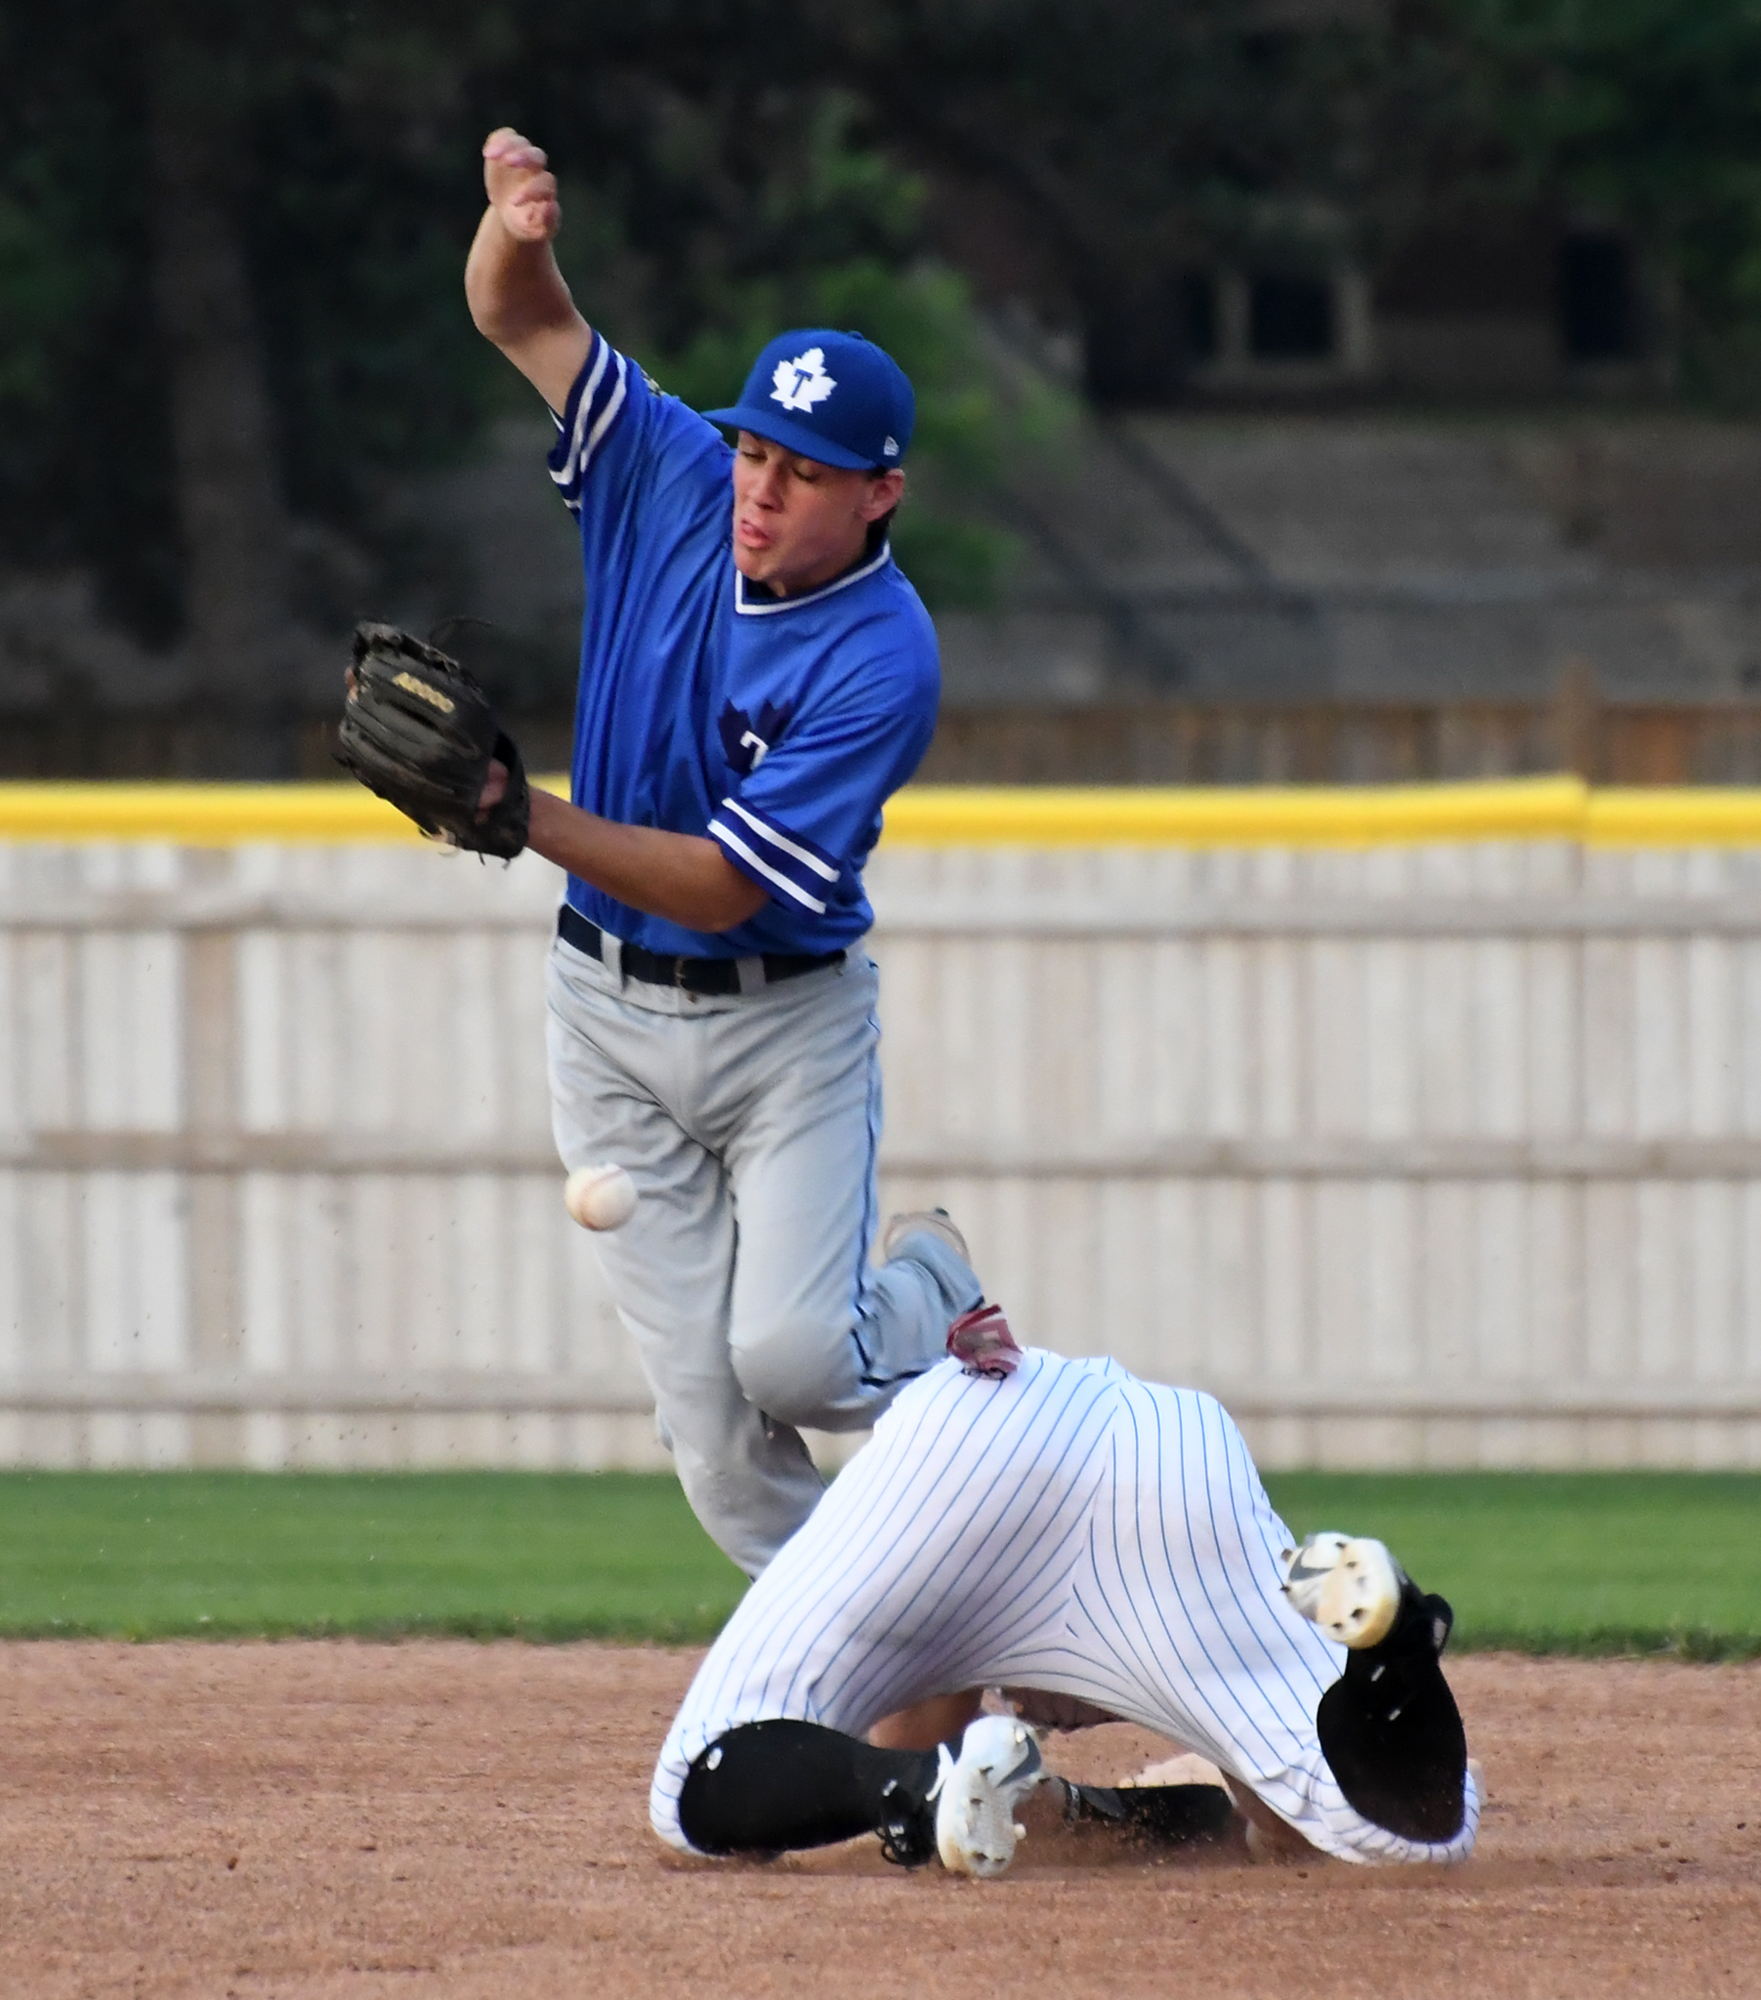 Photos: Guelph Royals-Toronto IBL baseball